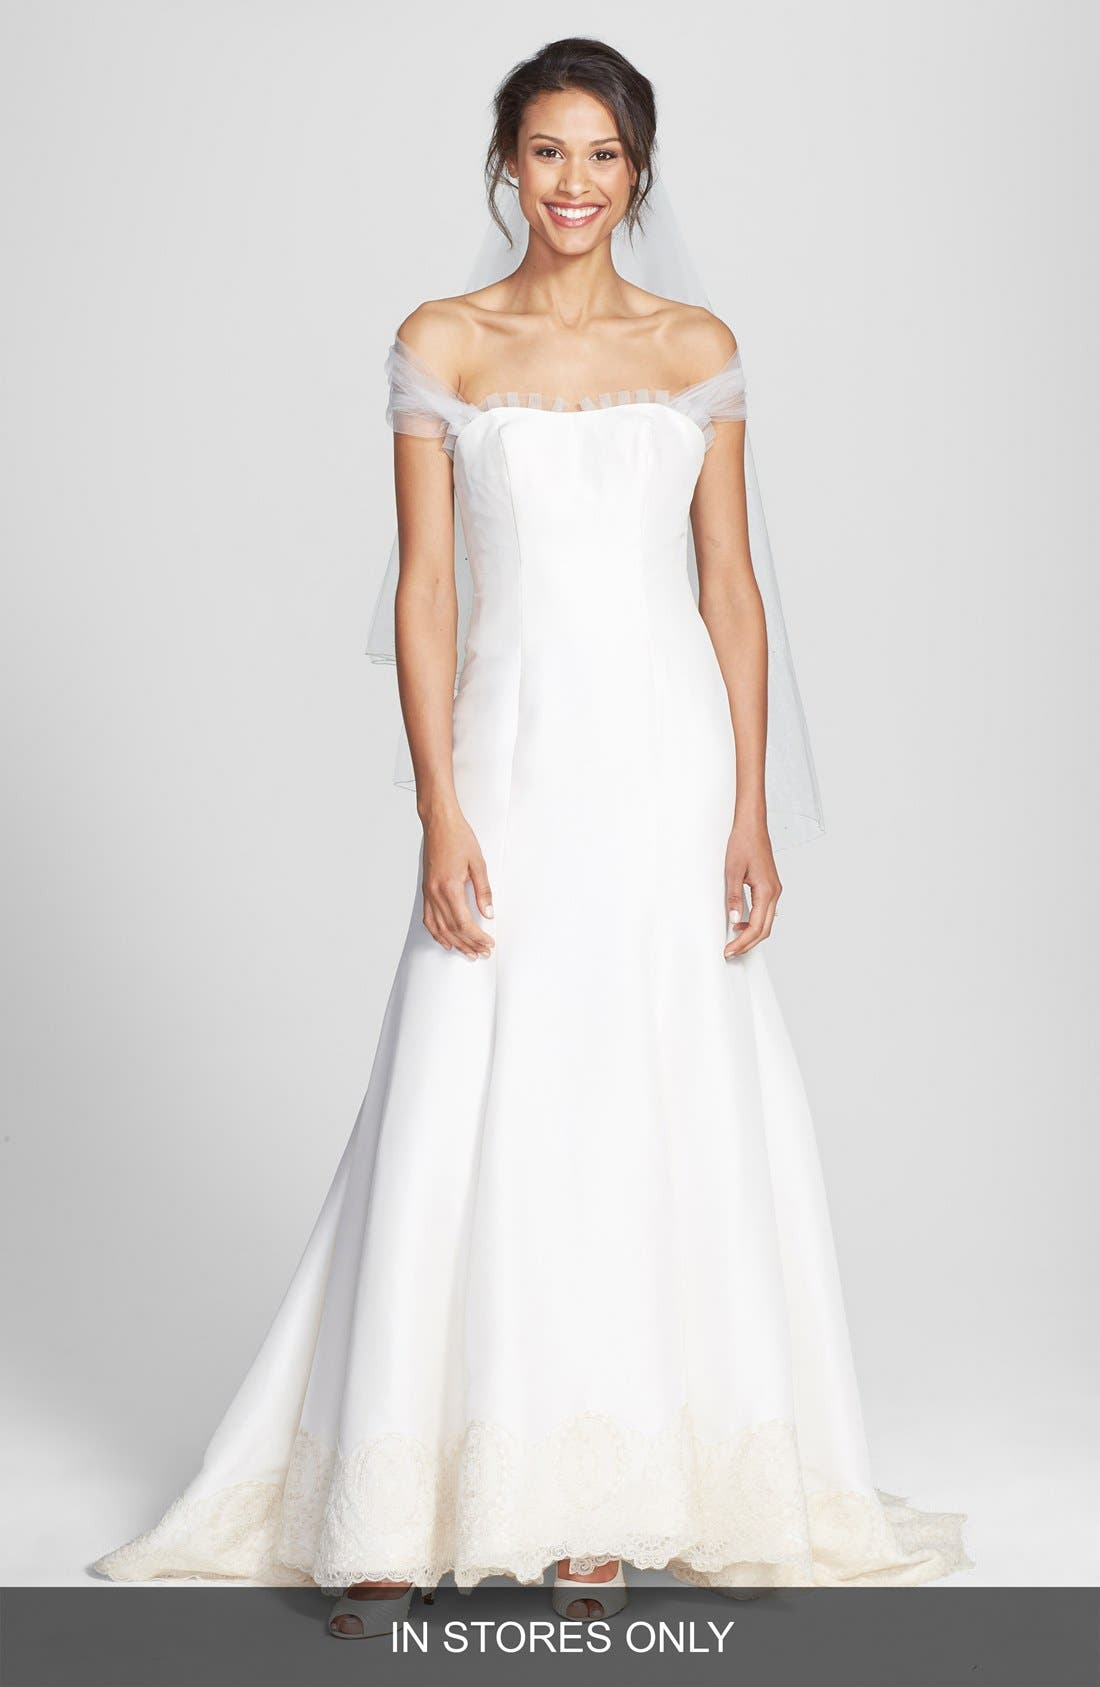 Olia Zavozina 'Savannah' Removable Illusion Halter Lace Trim Silk Shantung Gown (In Stores Only)